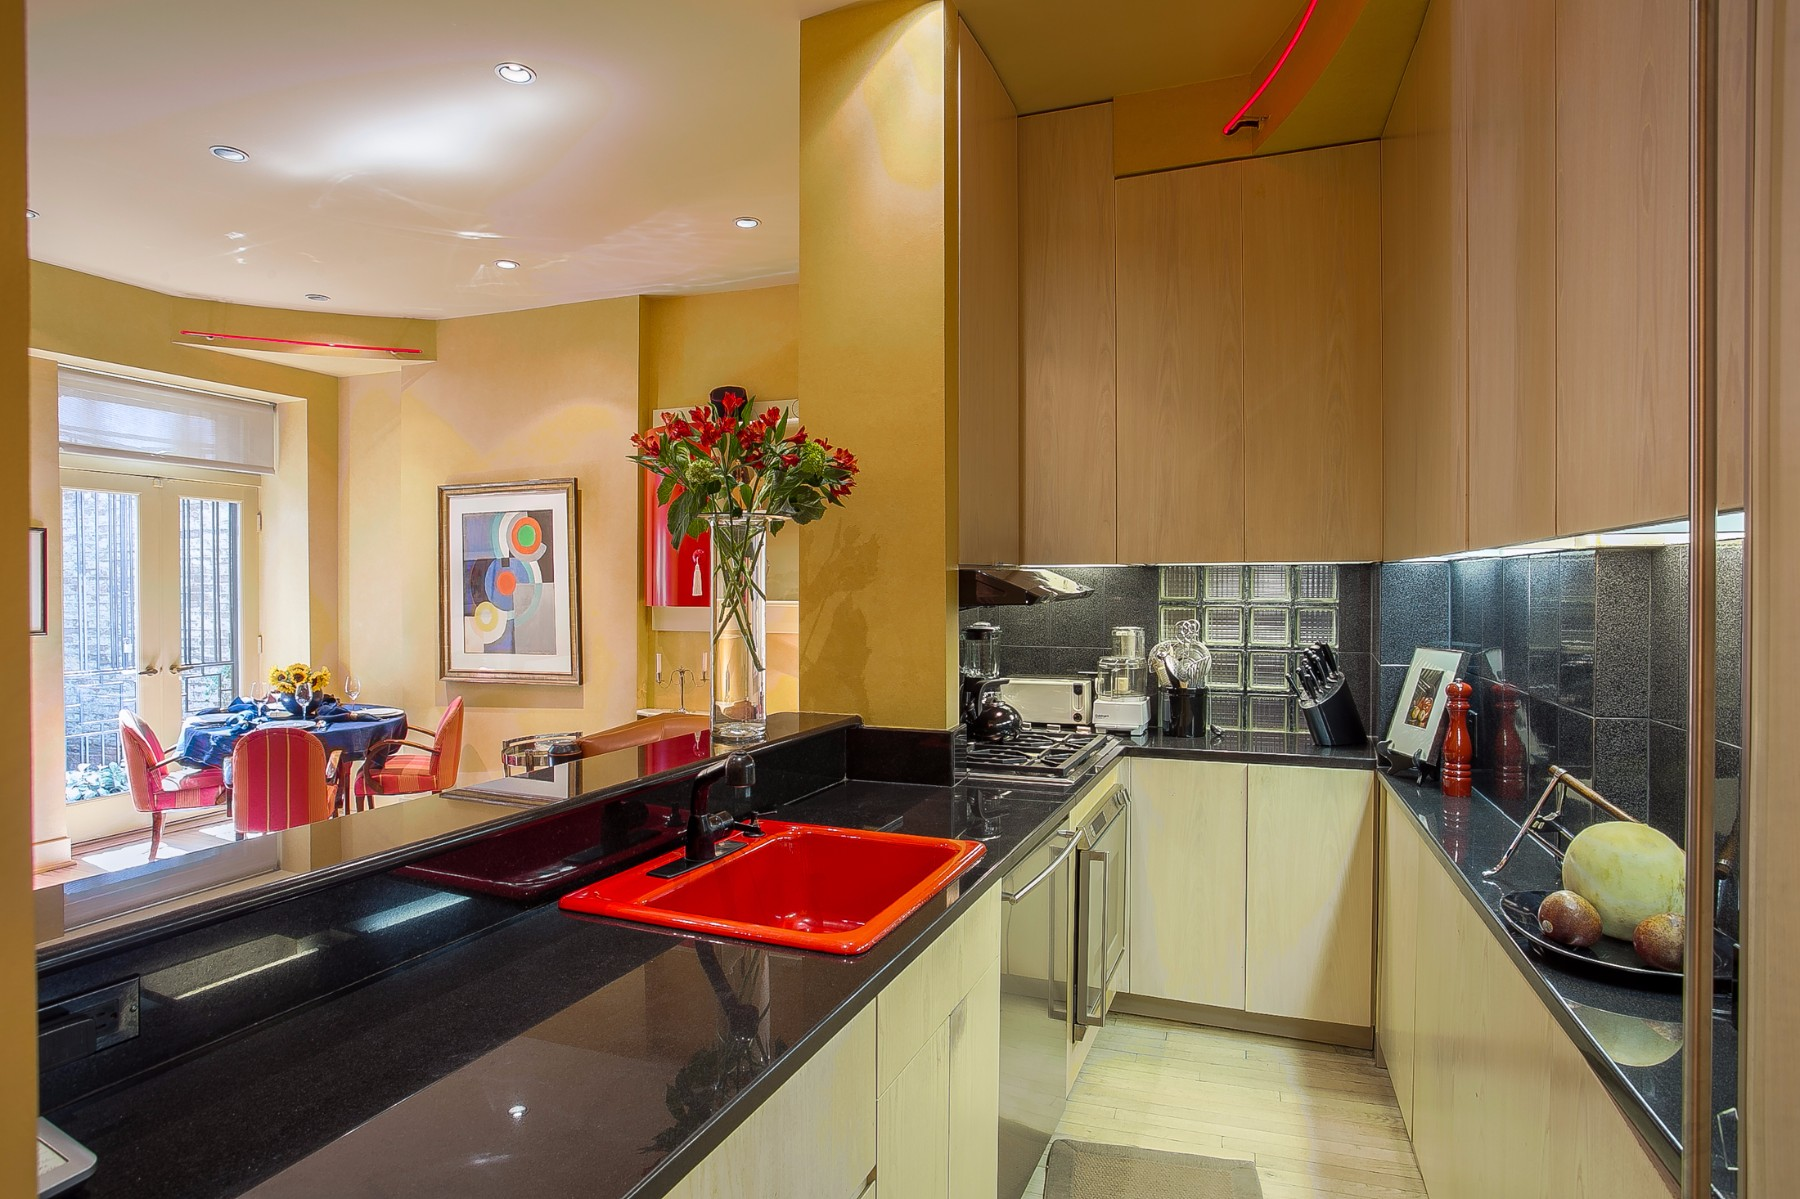 Two Bedroom Two Bathroom Upper East Side Duplex Is At 68 East 93rd Street Between Park And Madison Avenues Not Too Shabby Of A Location